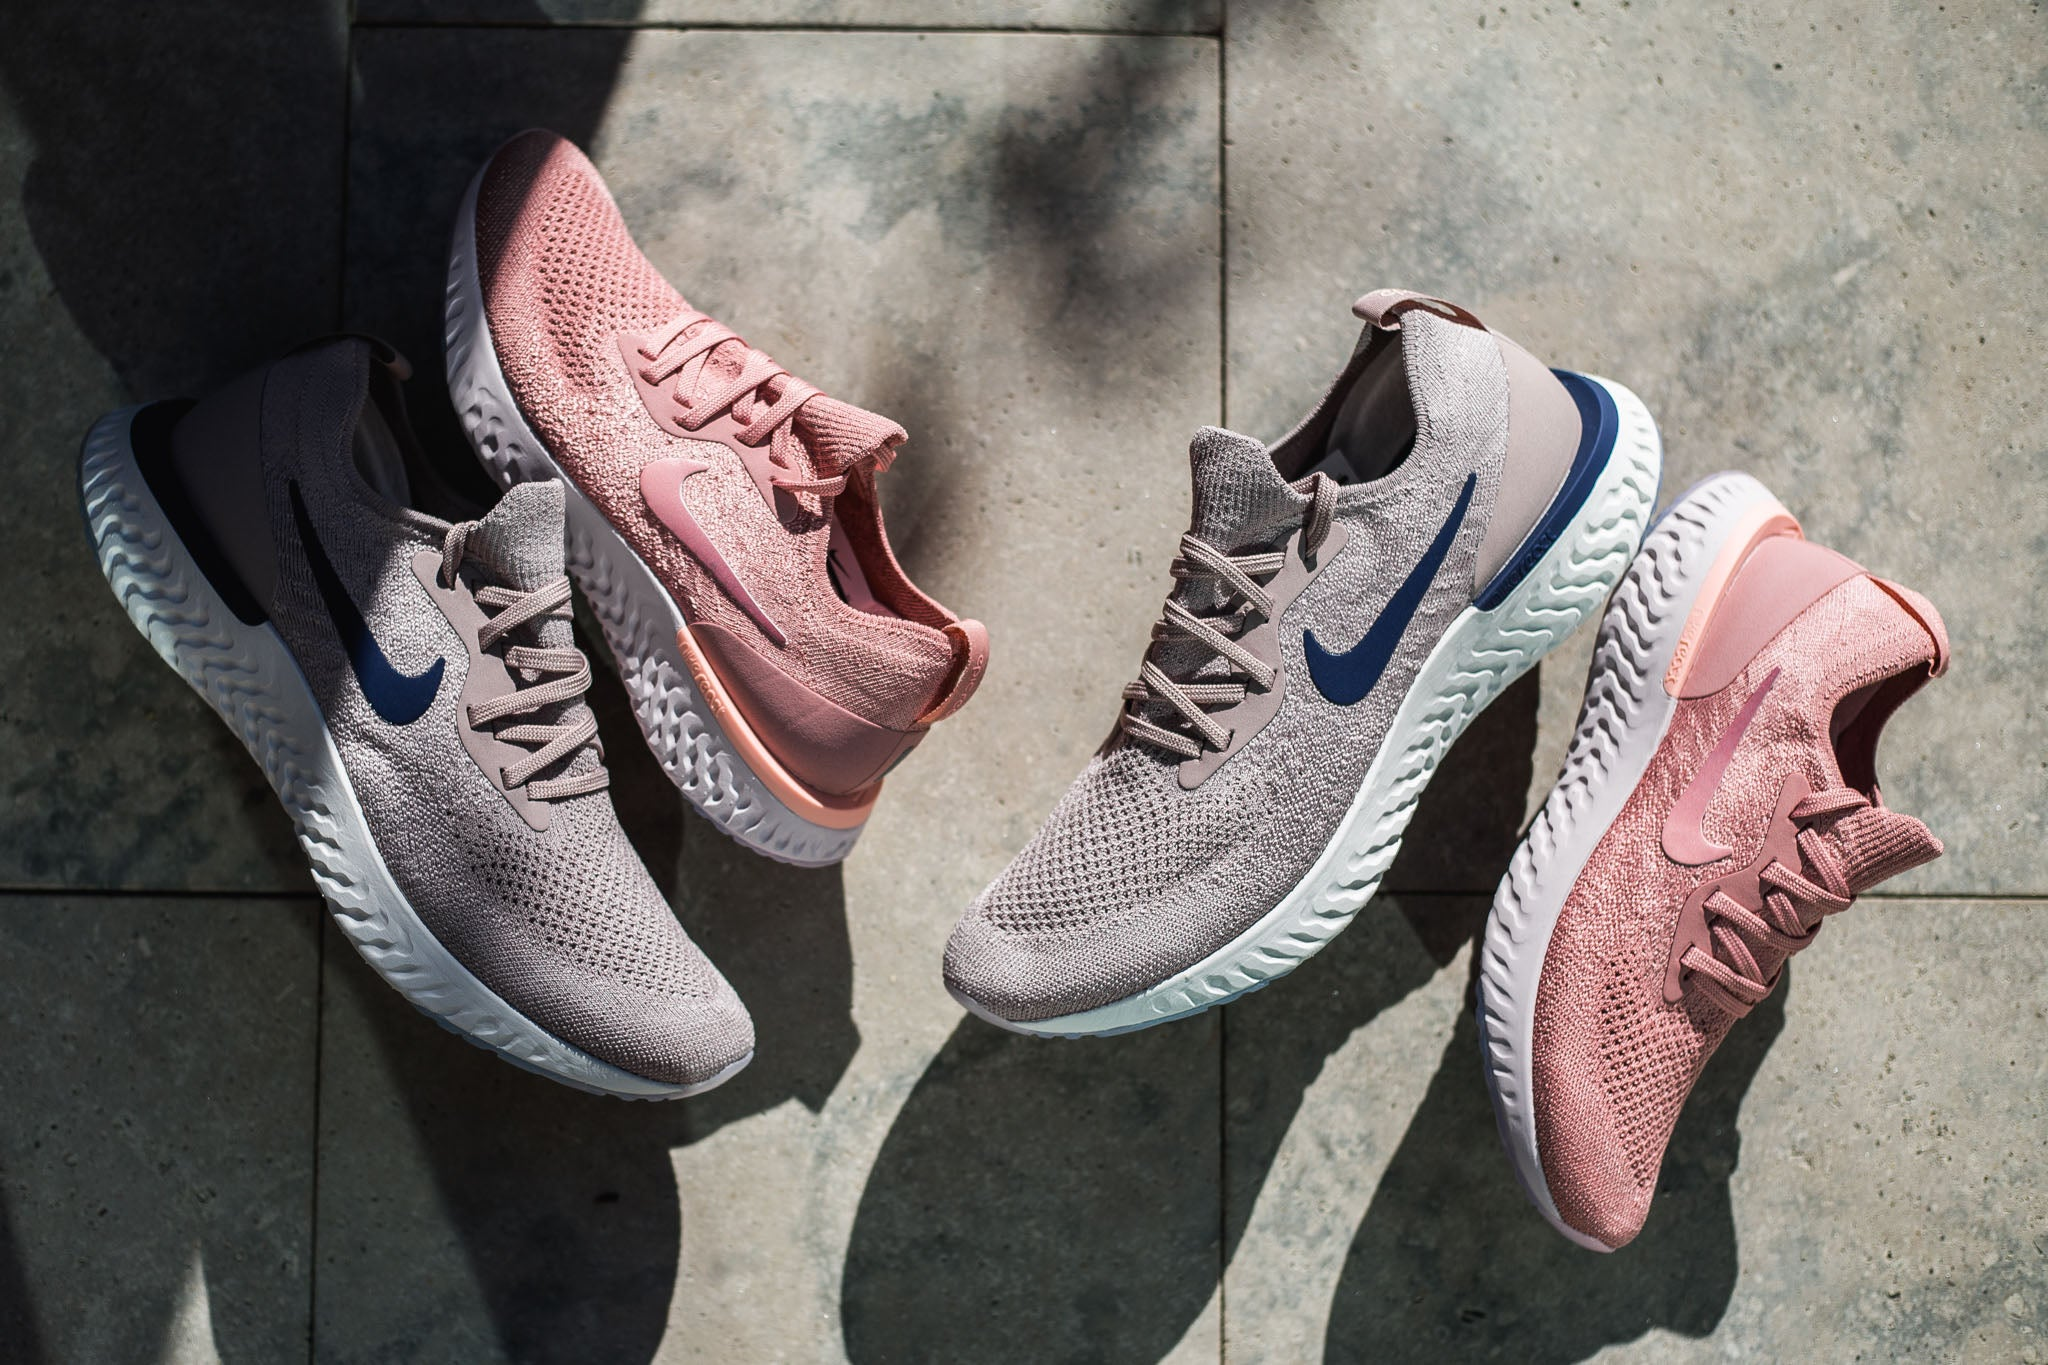 Nike Epic React Collection 07.05.18